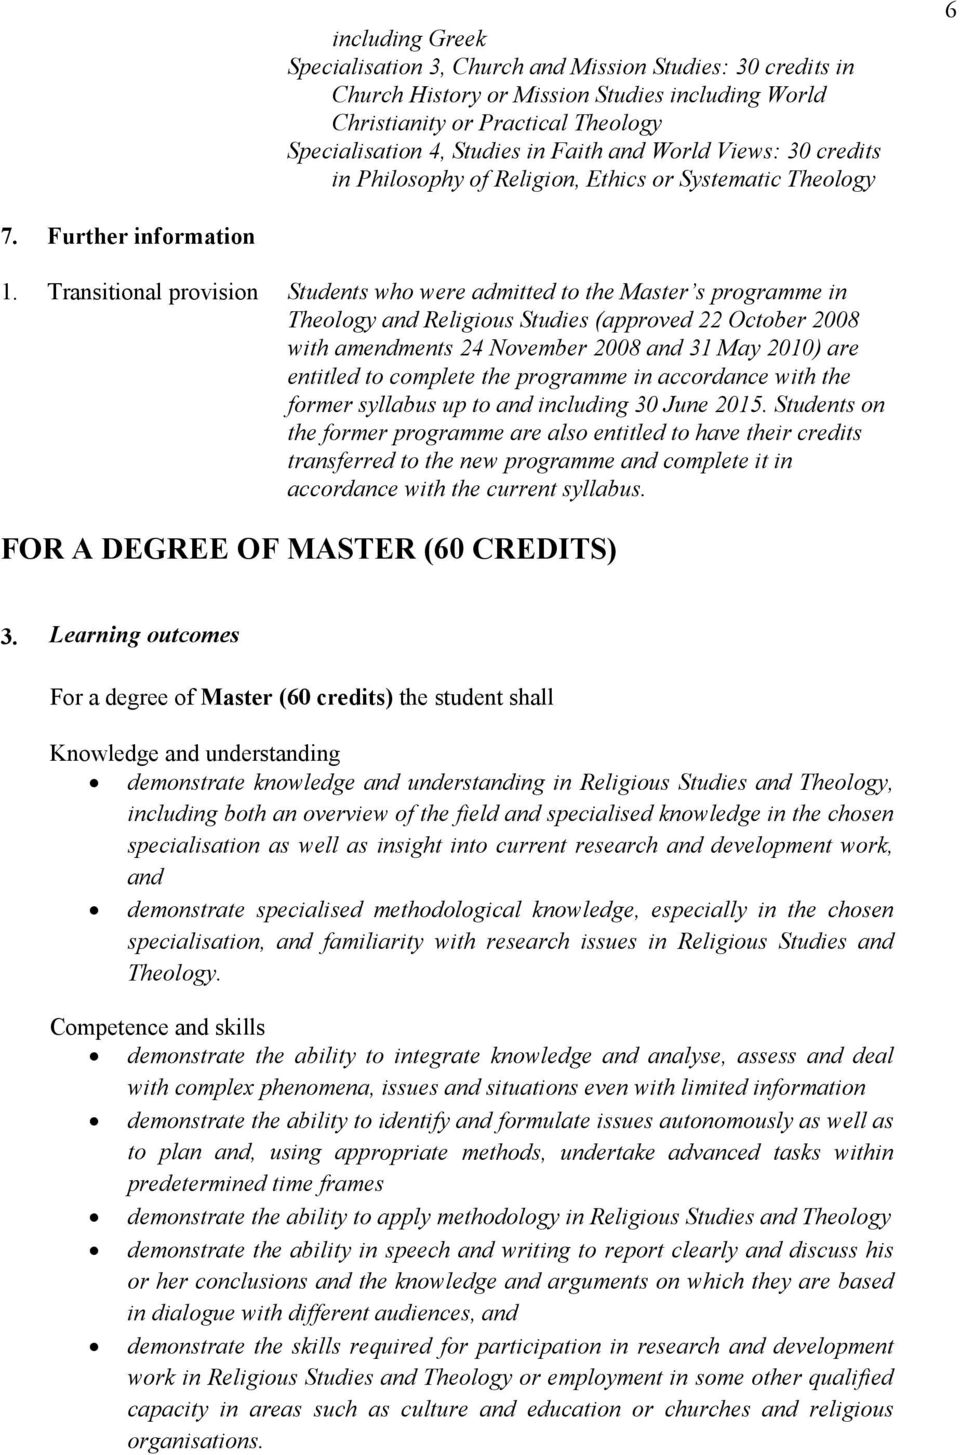 Transitional provision Students who were admitted to the Master s programme in Theology and Religious Studies (approved 22 October 2008 with amendments 24 November 2008 and 31 May 2010) are entitled